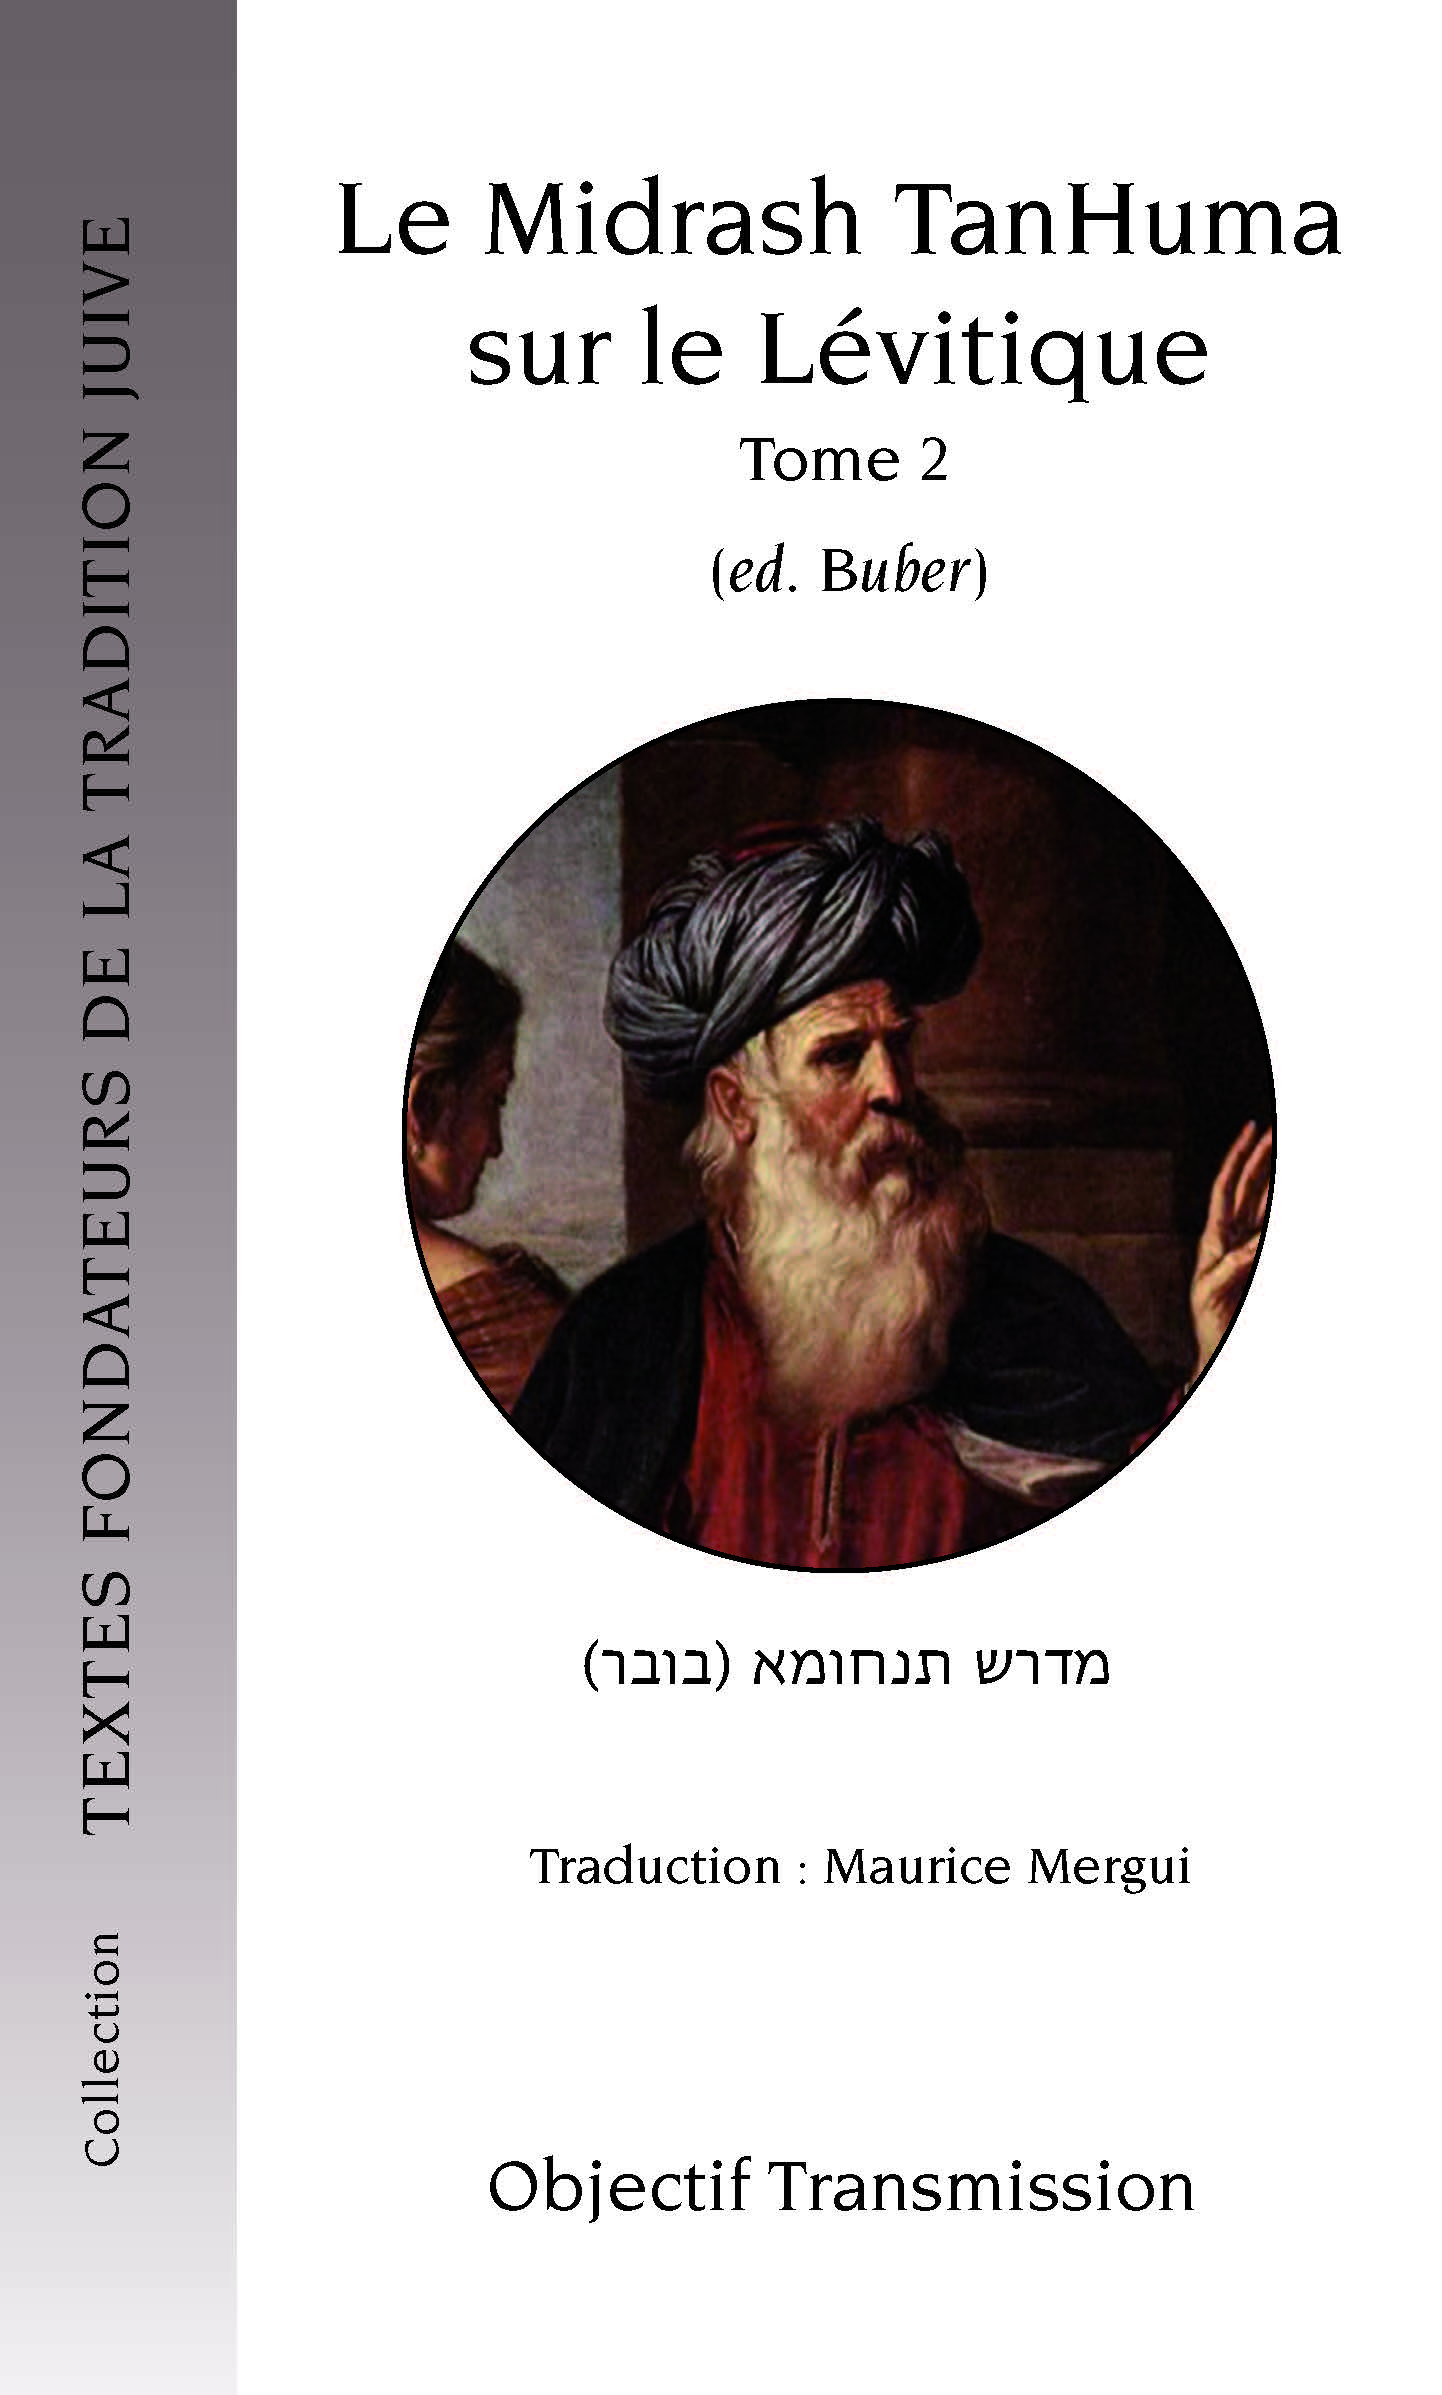 Le Midrash TanHuma sur le Lévitique (version Buber) Tome 2